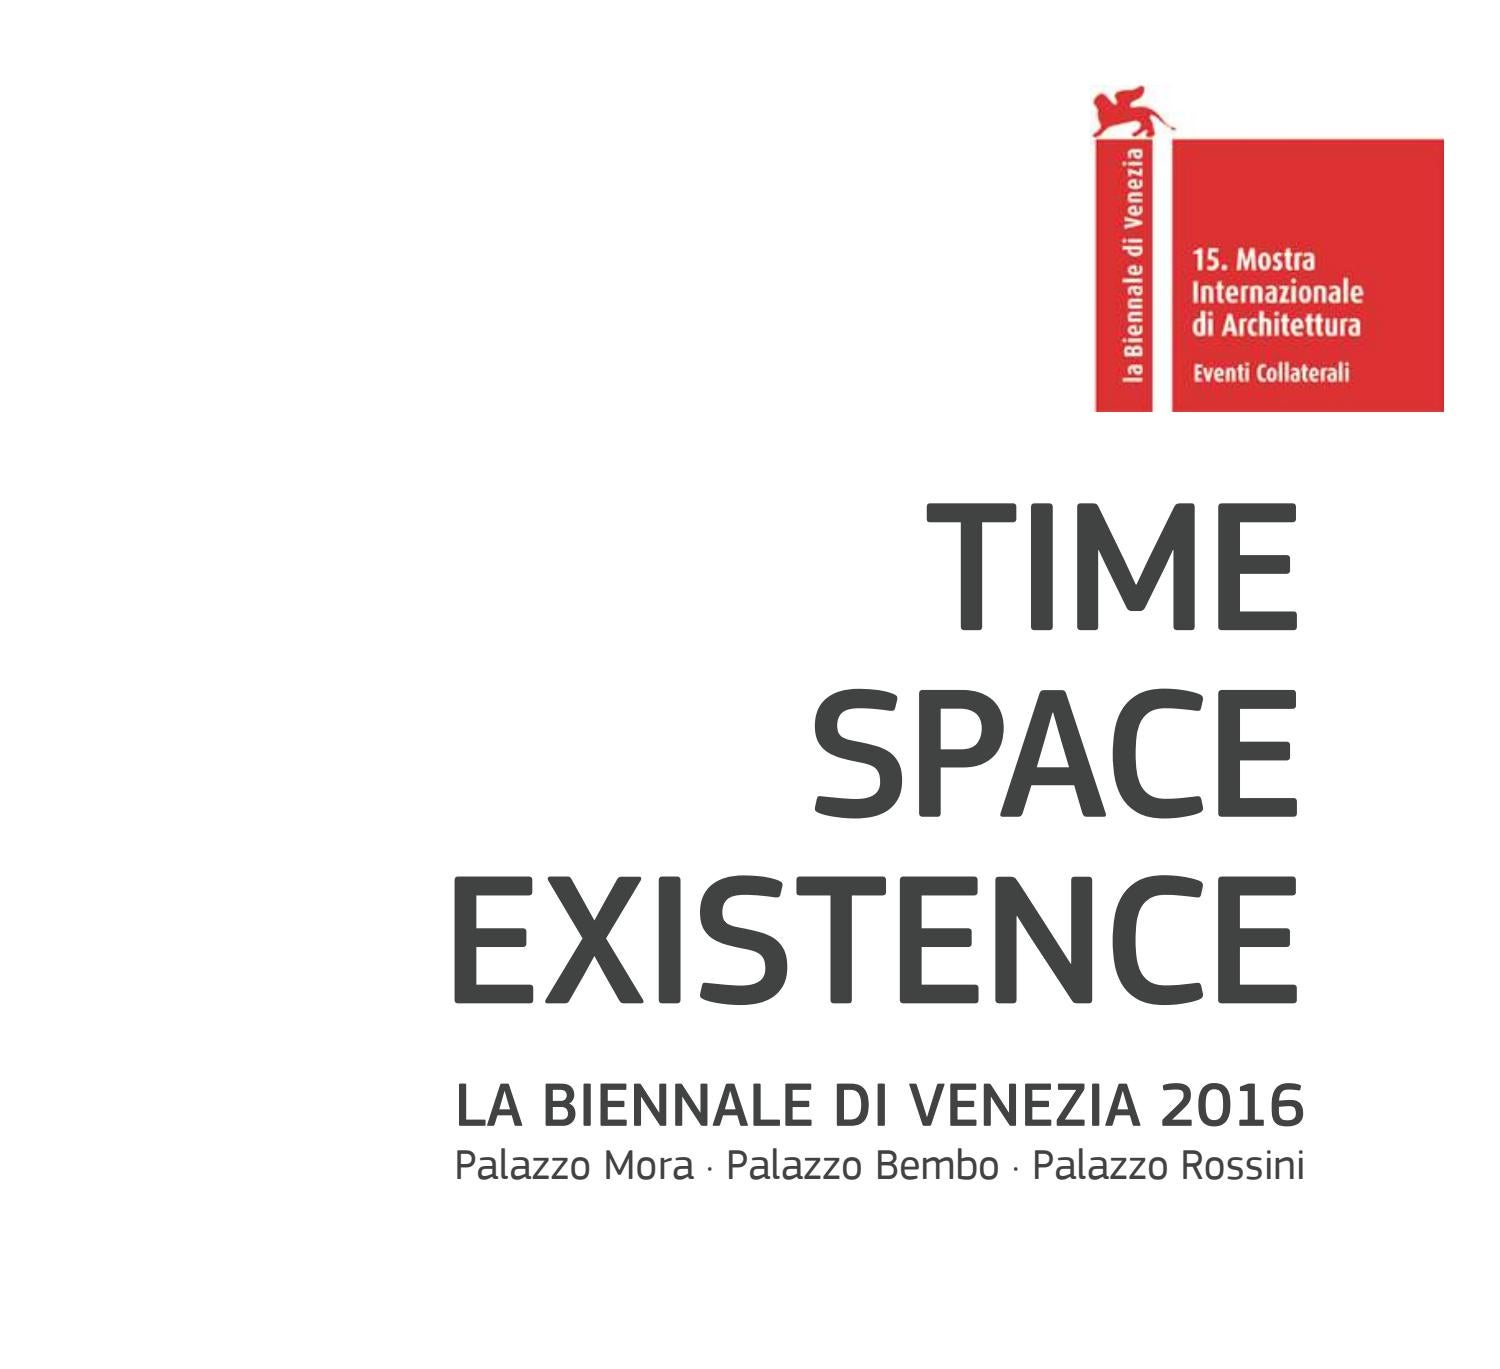 Time Space Existence Biennale Di Venezia 2016 By Massimo Valente